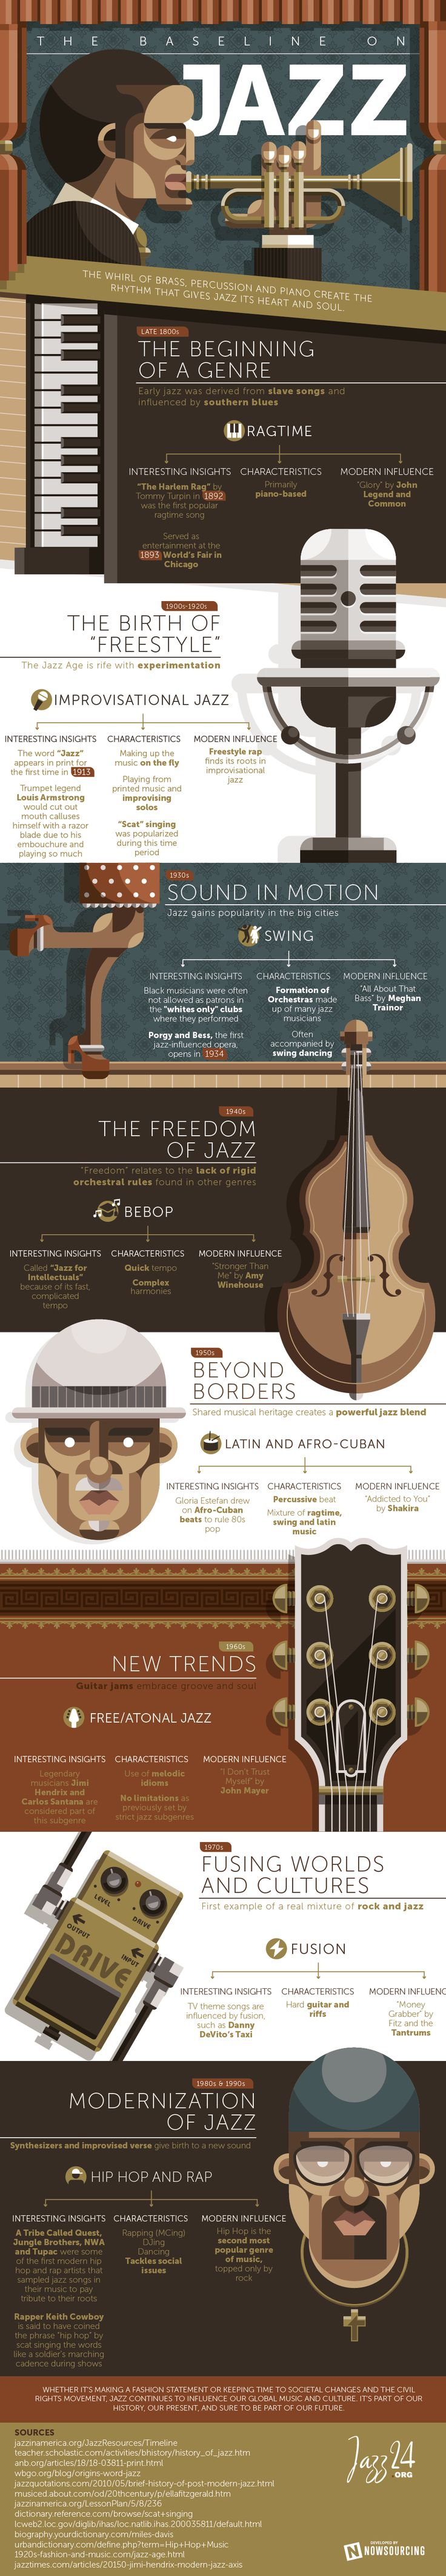 The Baseline on Jazz #infographic #Music #Jazz